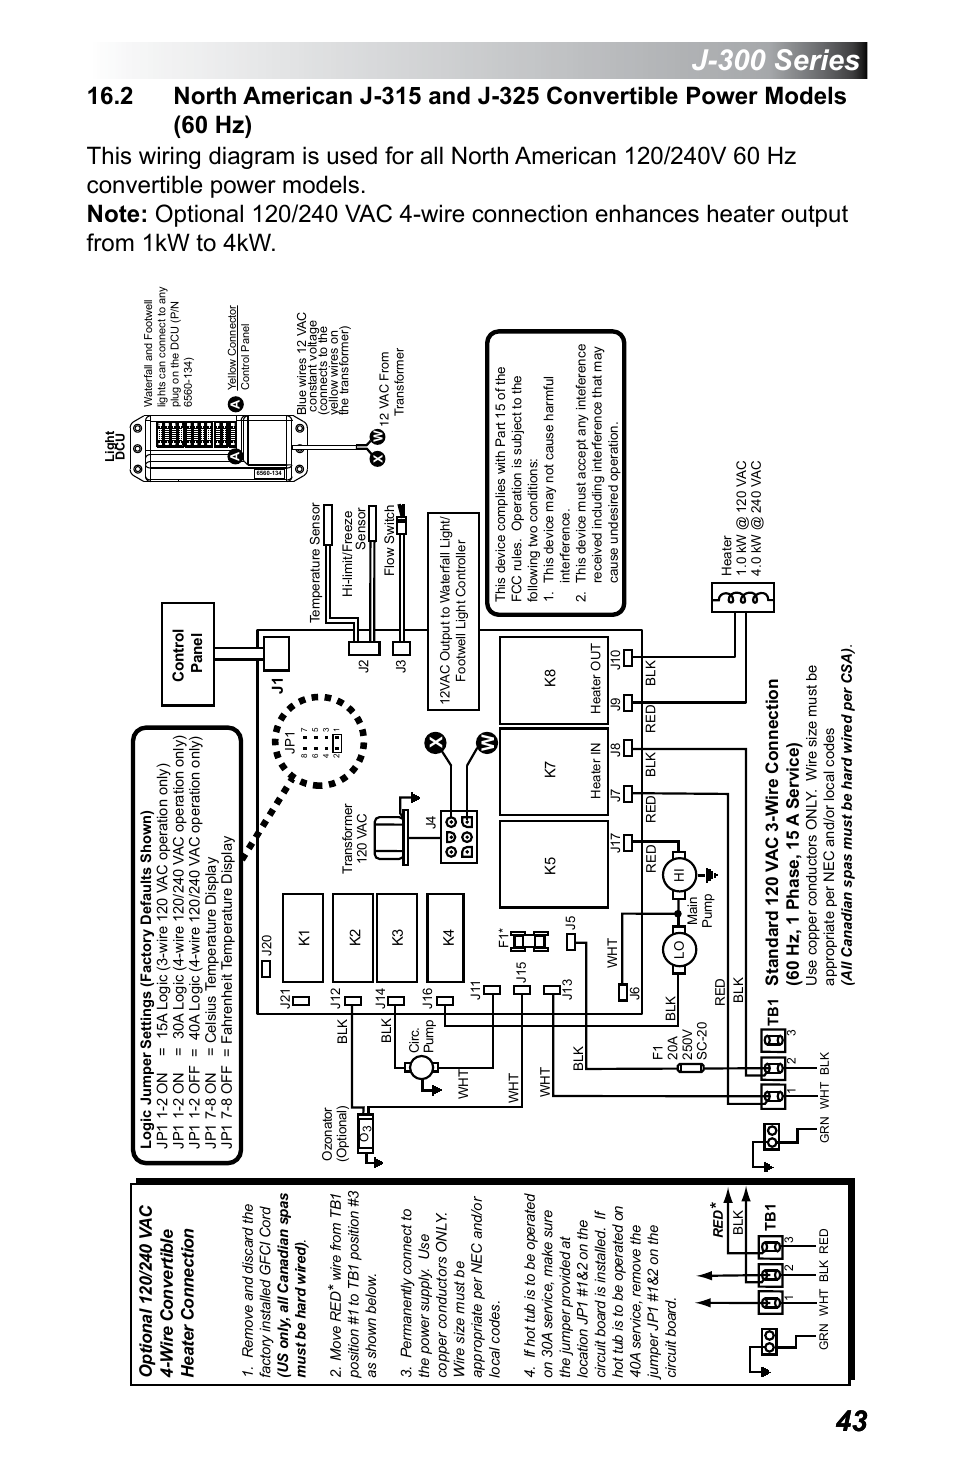 jacuzzi j 365 wiring diagram jacuzzi image wiring 2 north american j 315 and j 325 convertible power models 60 hz on jacuzzi j